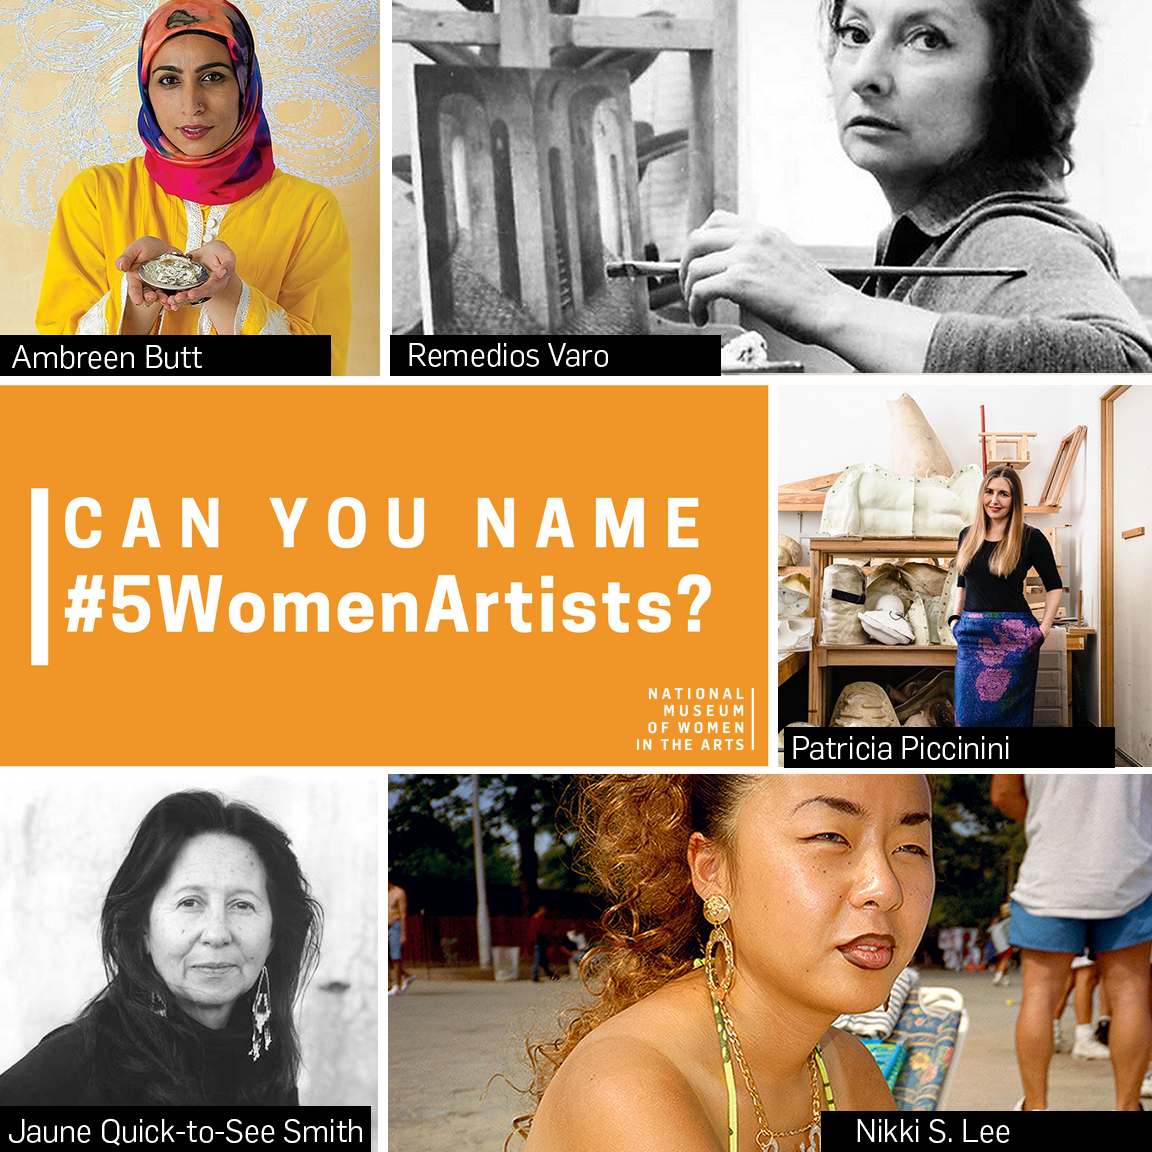 A graphic depicting photos of five different women artists including: Ambreen Butt, Remedios Varo, Patricia Piccinini, Nikki S. Lee, and Jaune Quick-to-See Smith.